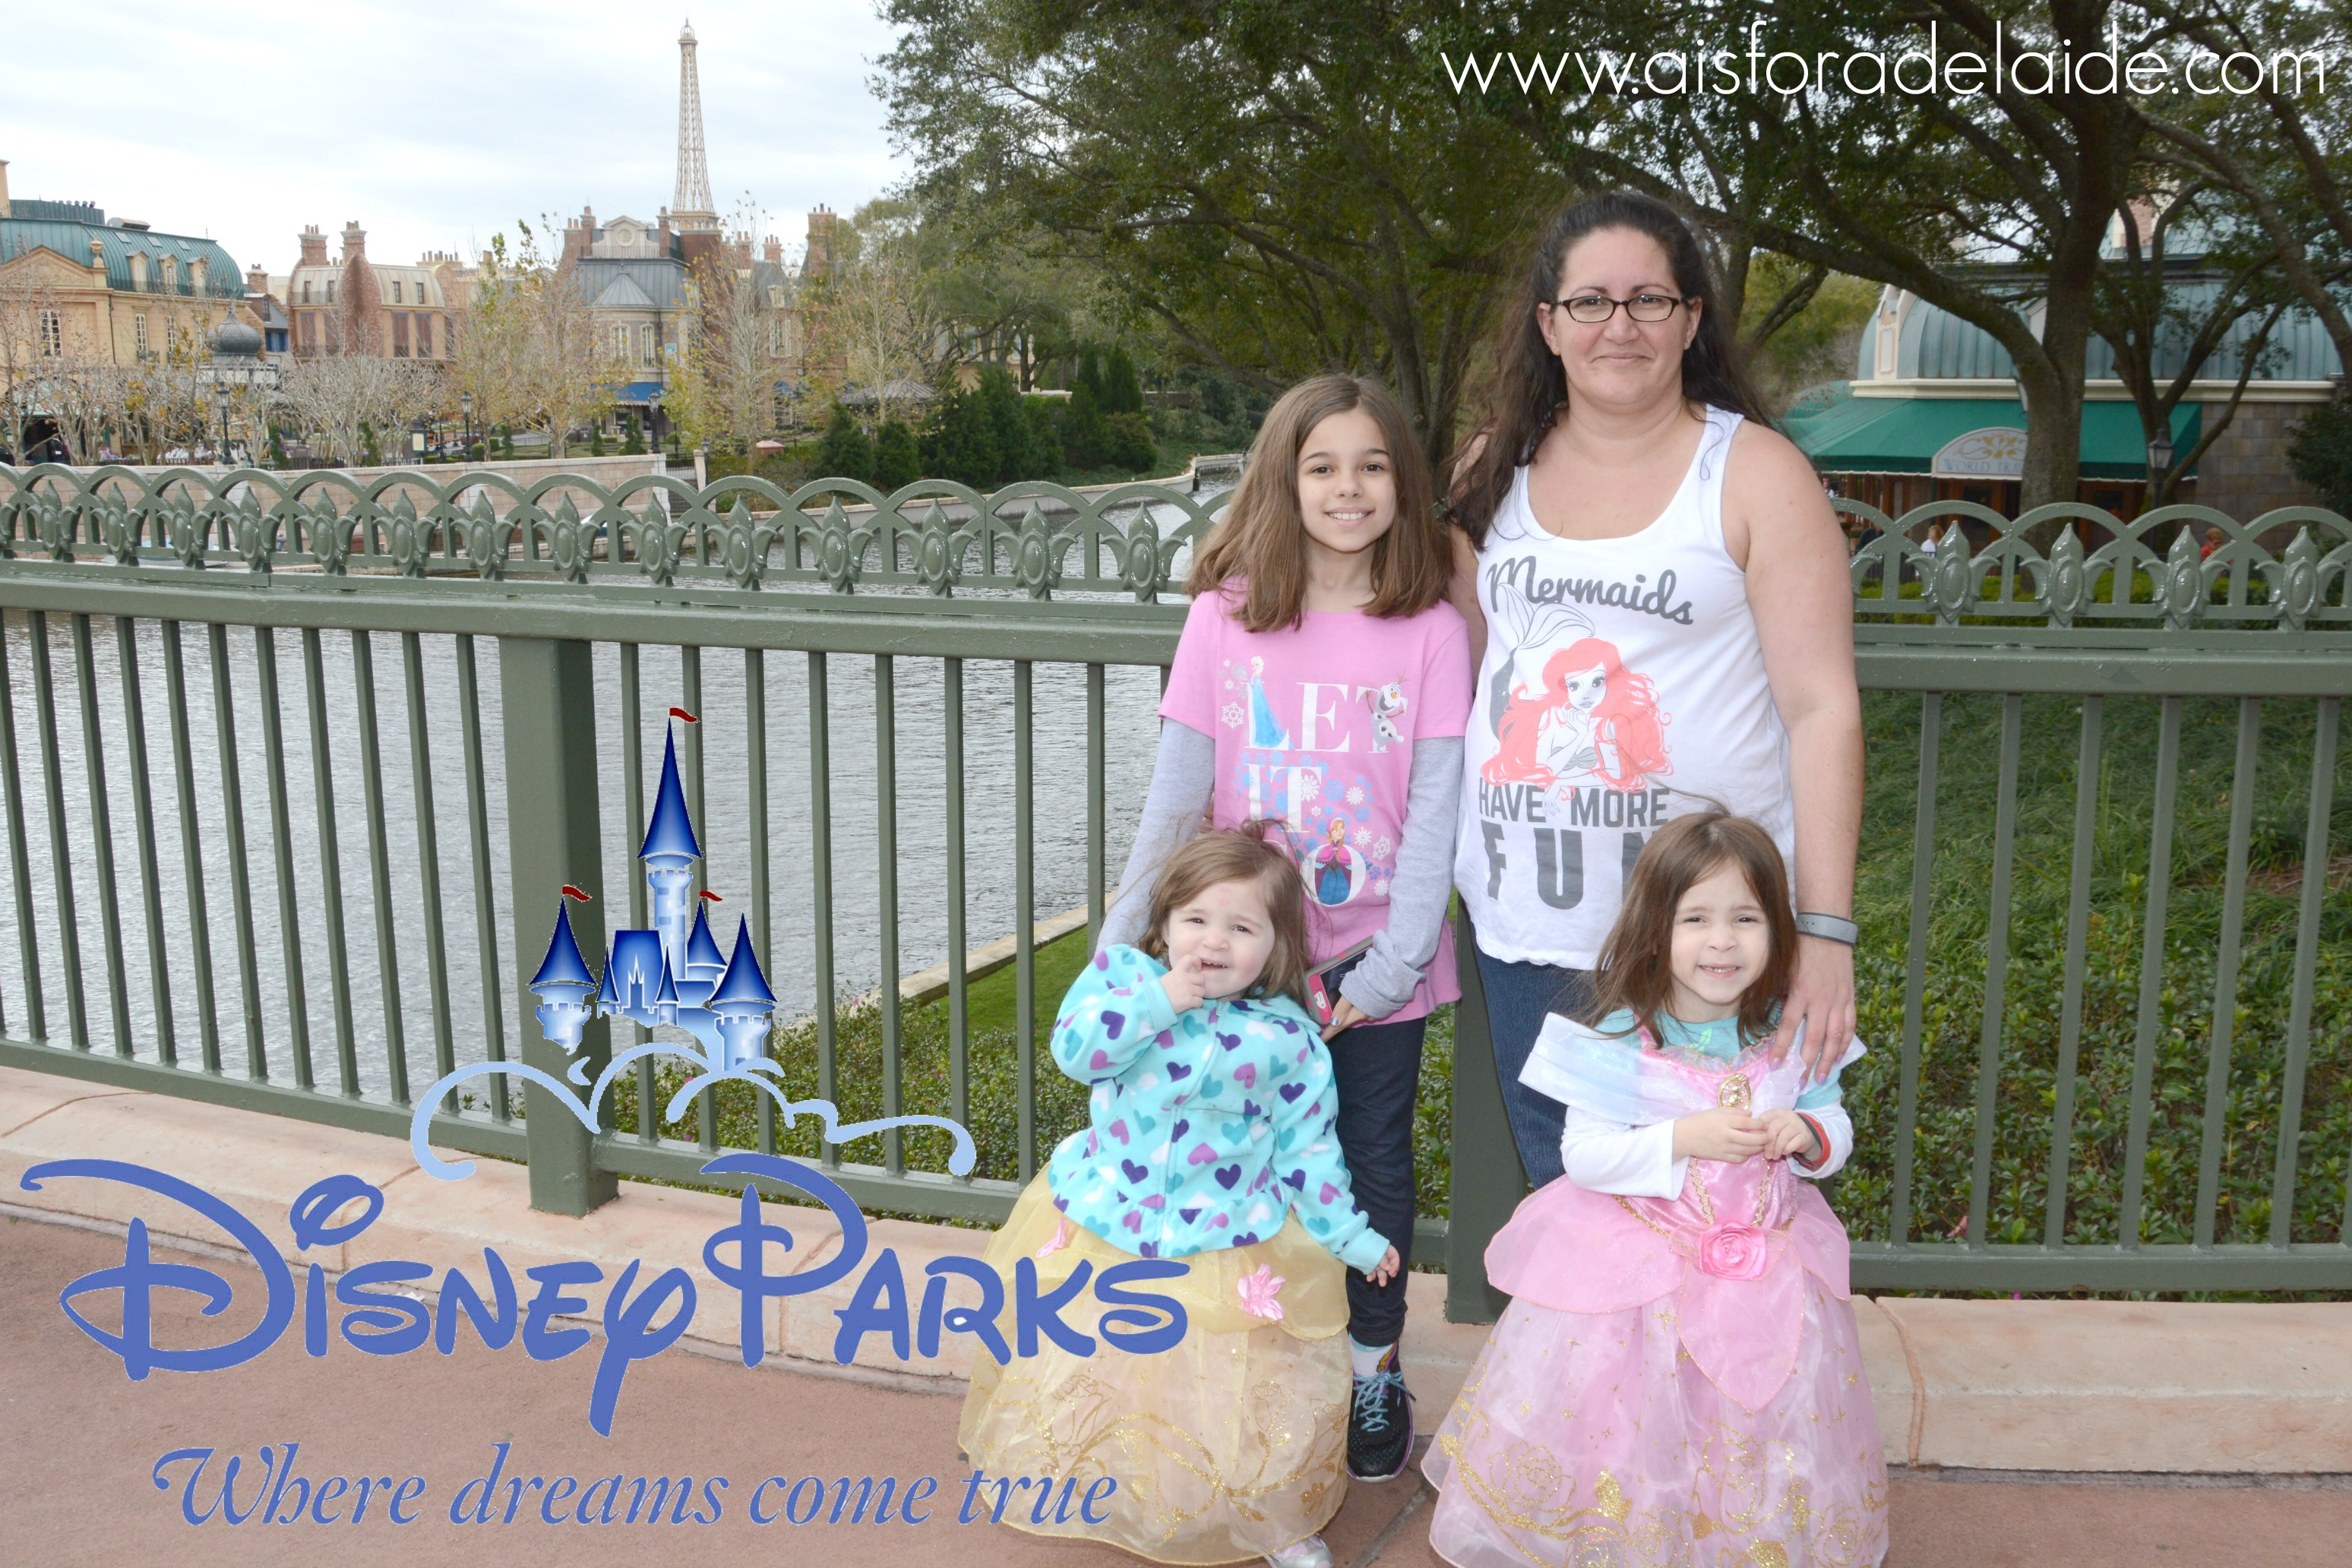 10 Ways to Make the Most of Your Budget During Your Walt Disney World Vacation